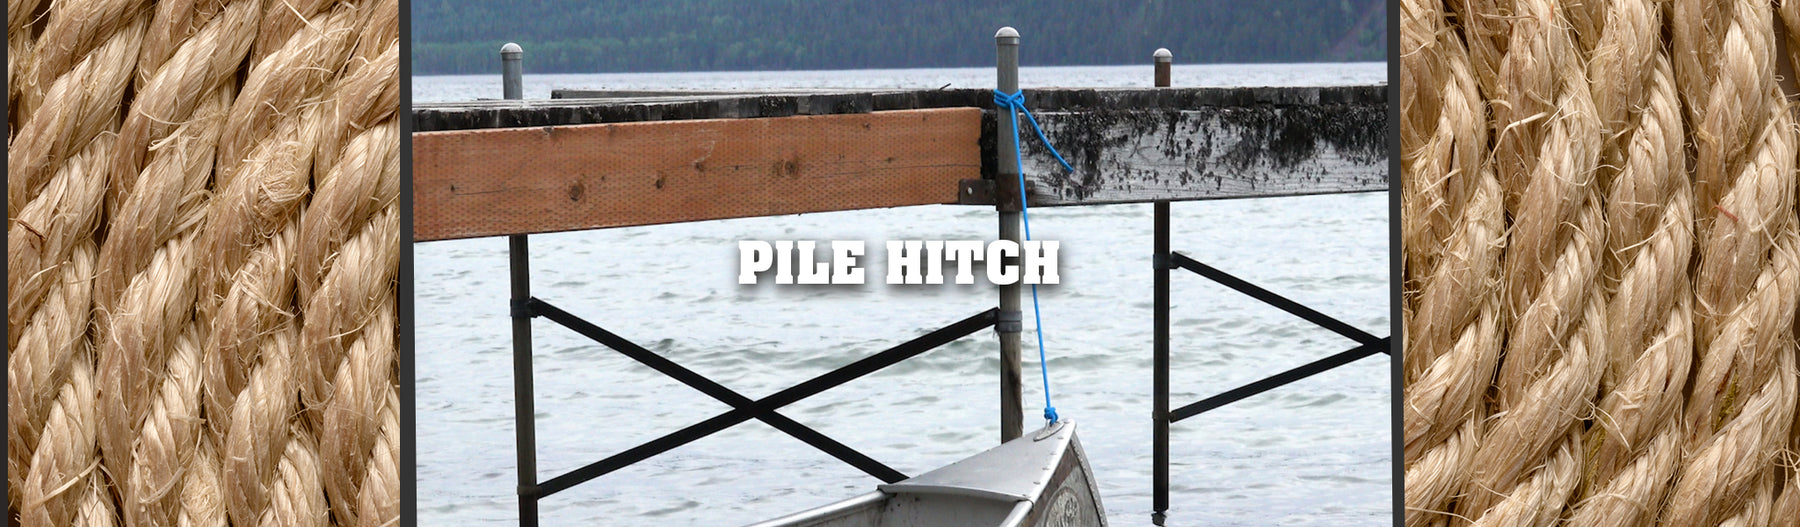 Pile Hitch